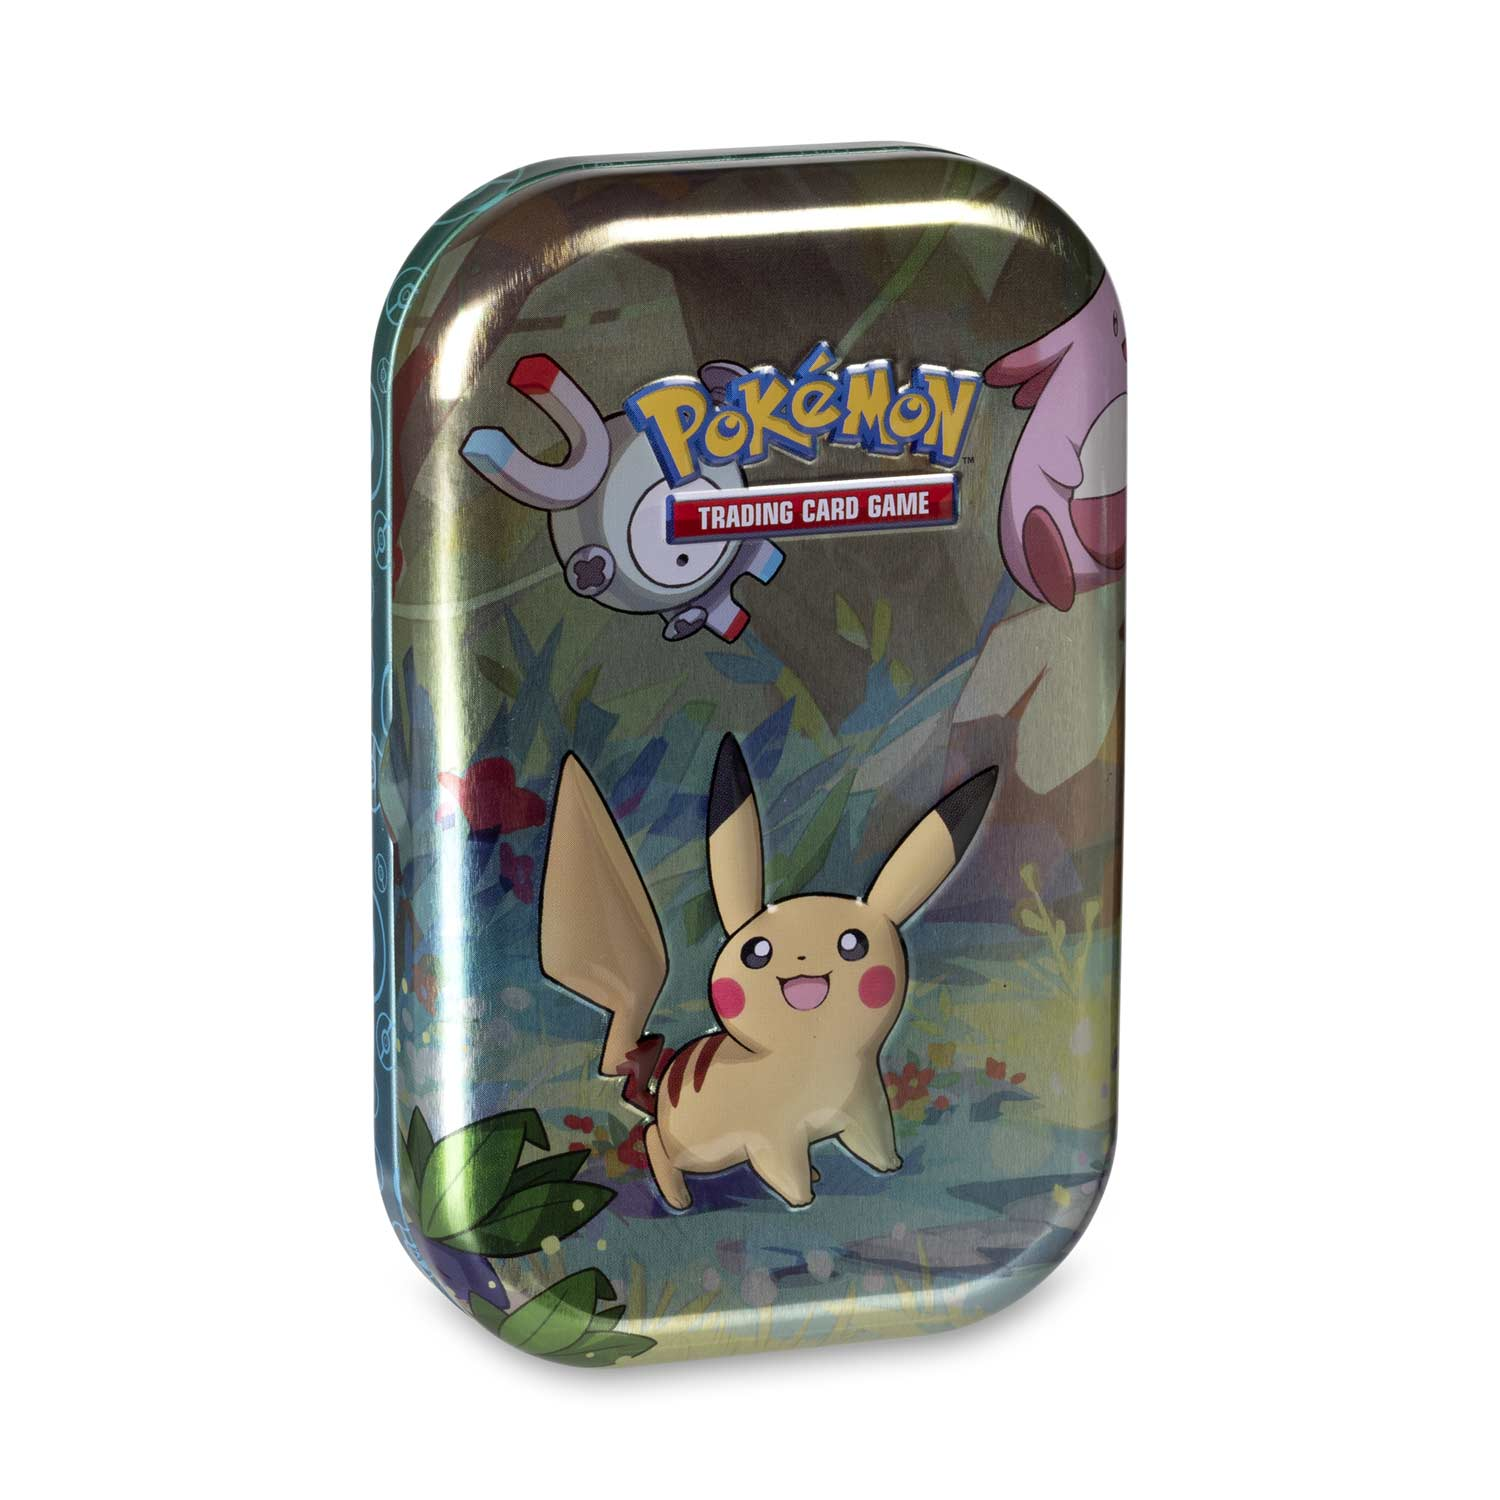 Pokemon Trading Card Game: Kanto Friends Mini Tin (Pikachu)